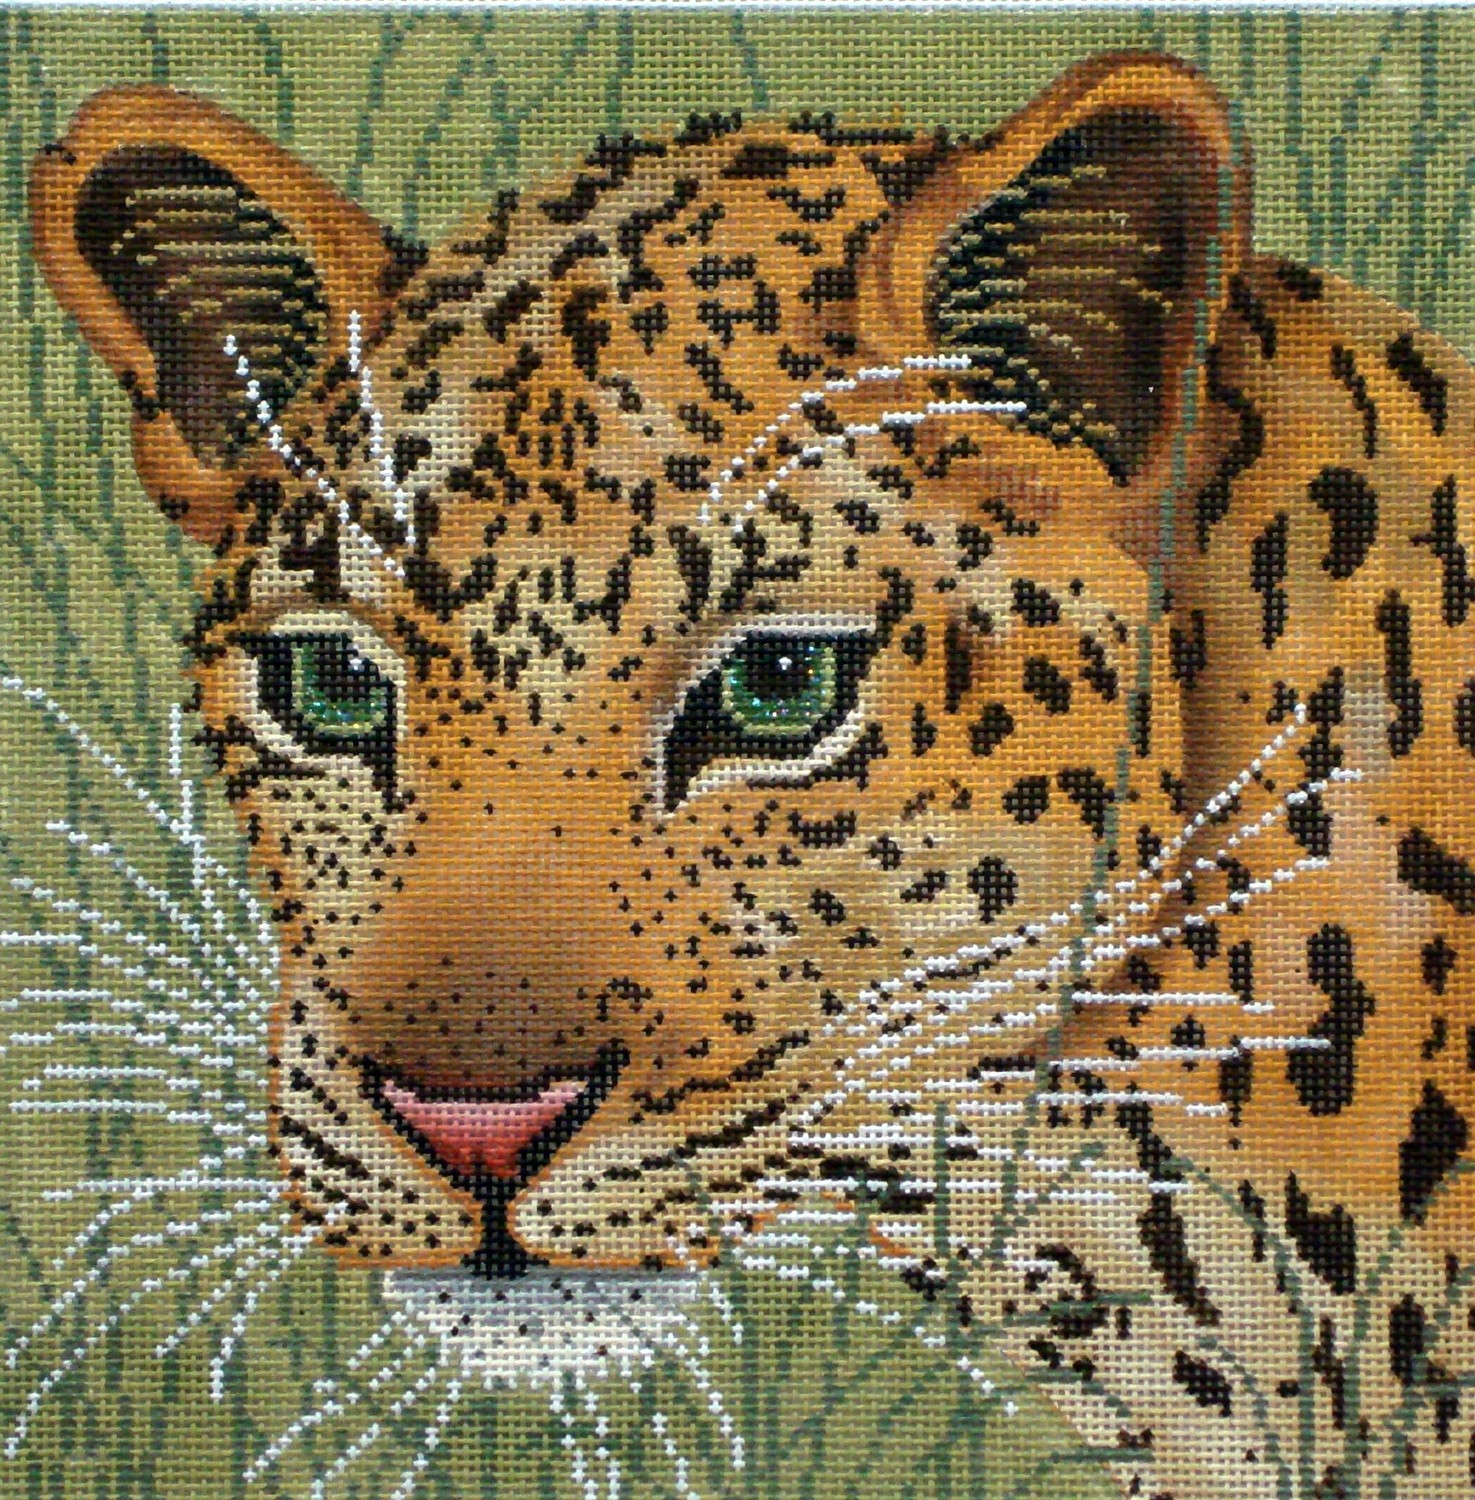 Leopard in Grasses    (handpainted needlepoint canvas by JP Needlepoint)